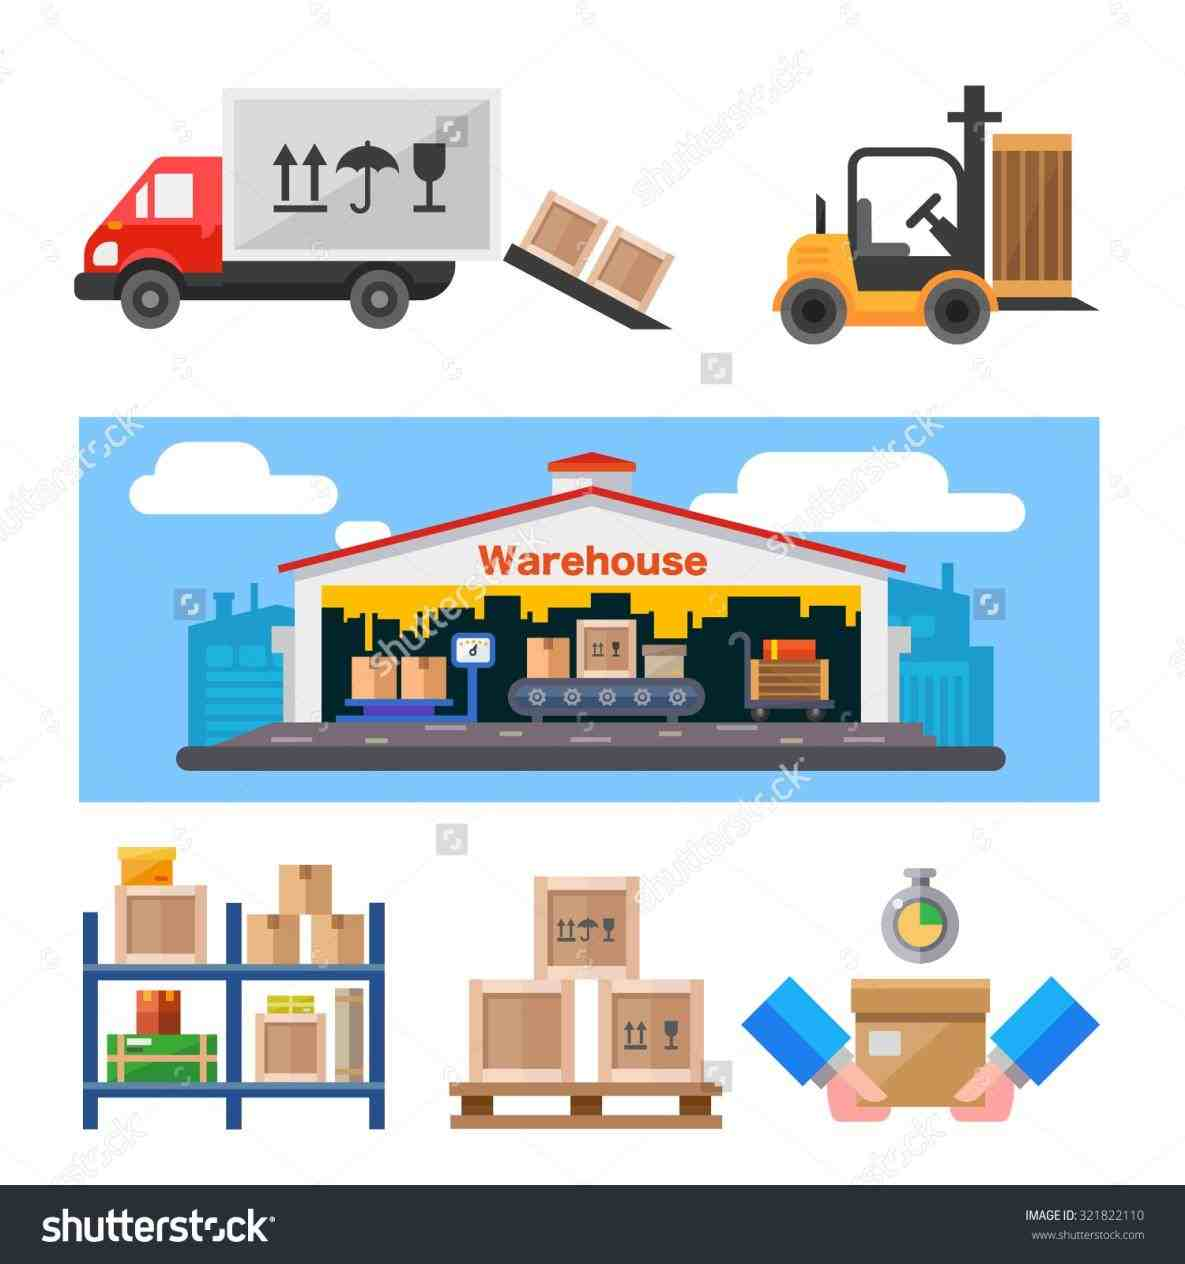 Warehouse clipart Factory › warehouse clipart online